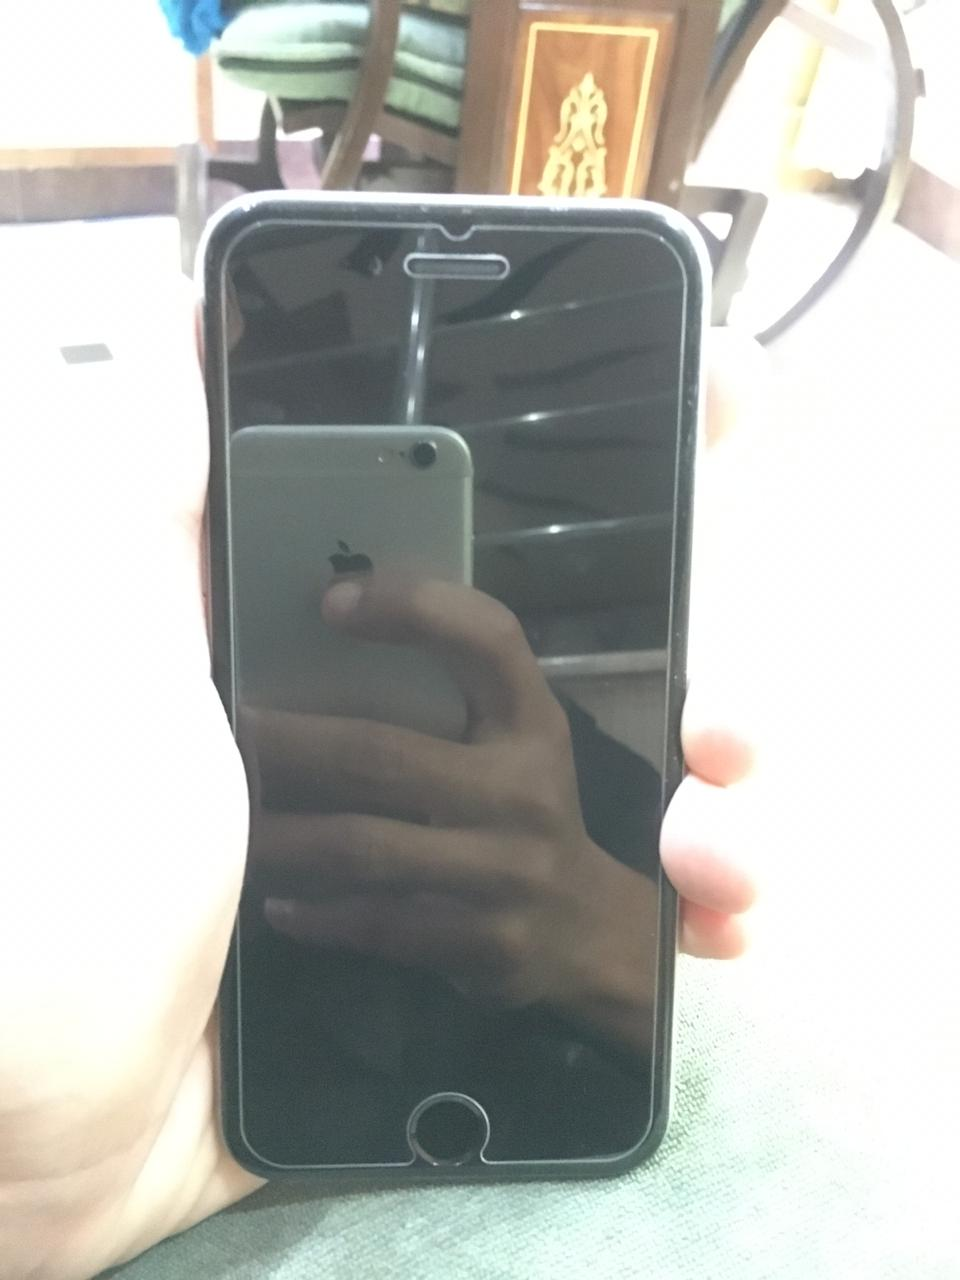 Iphone 6 (16gb) - photo 1